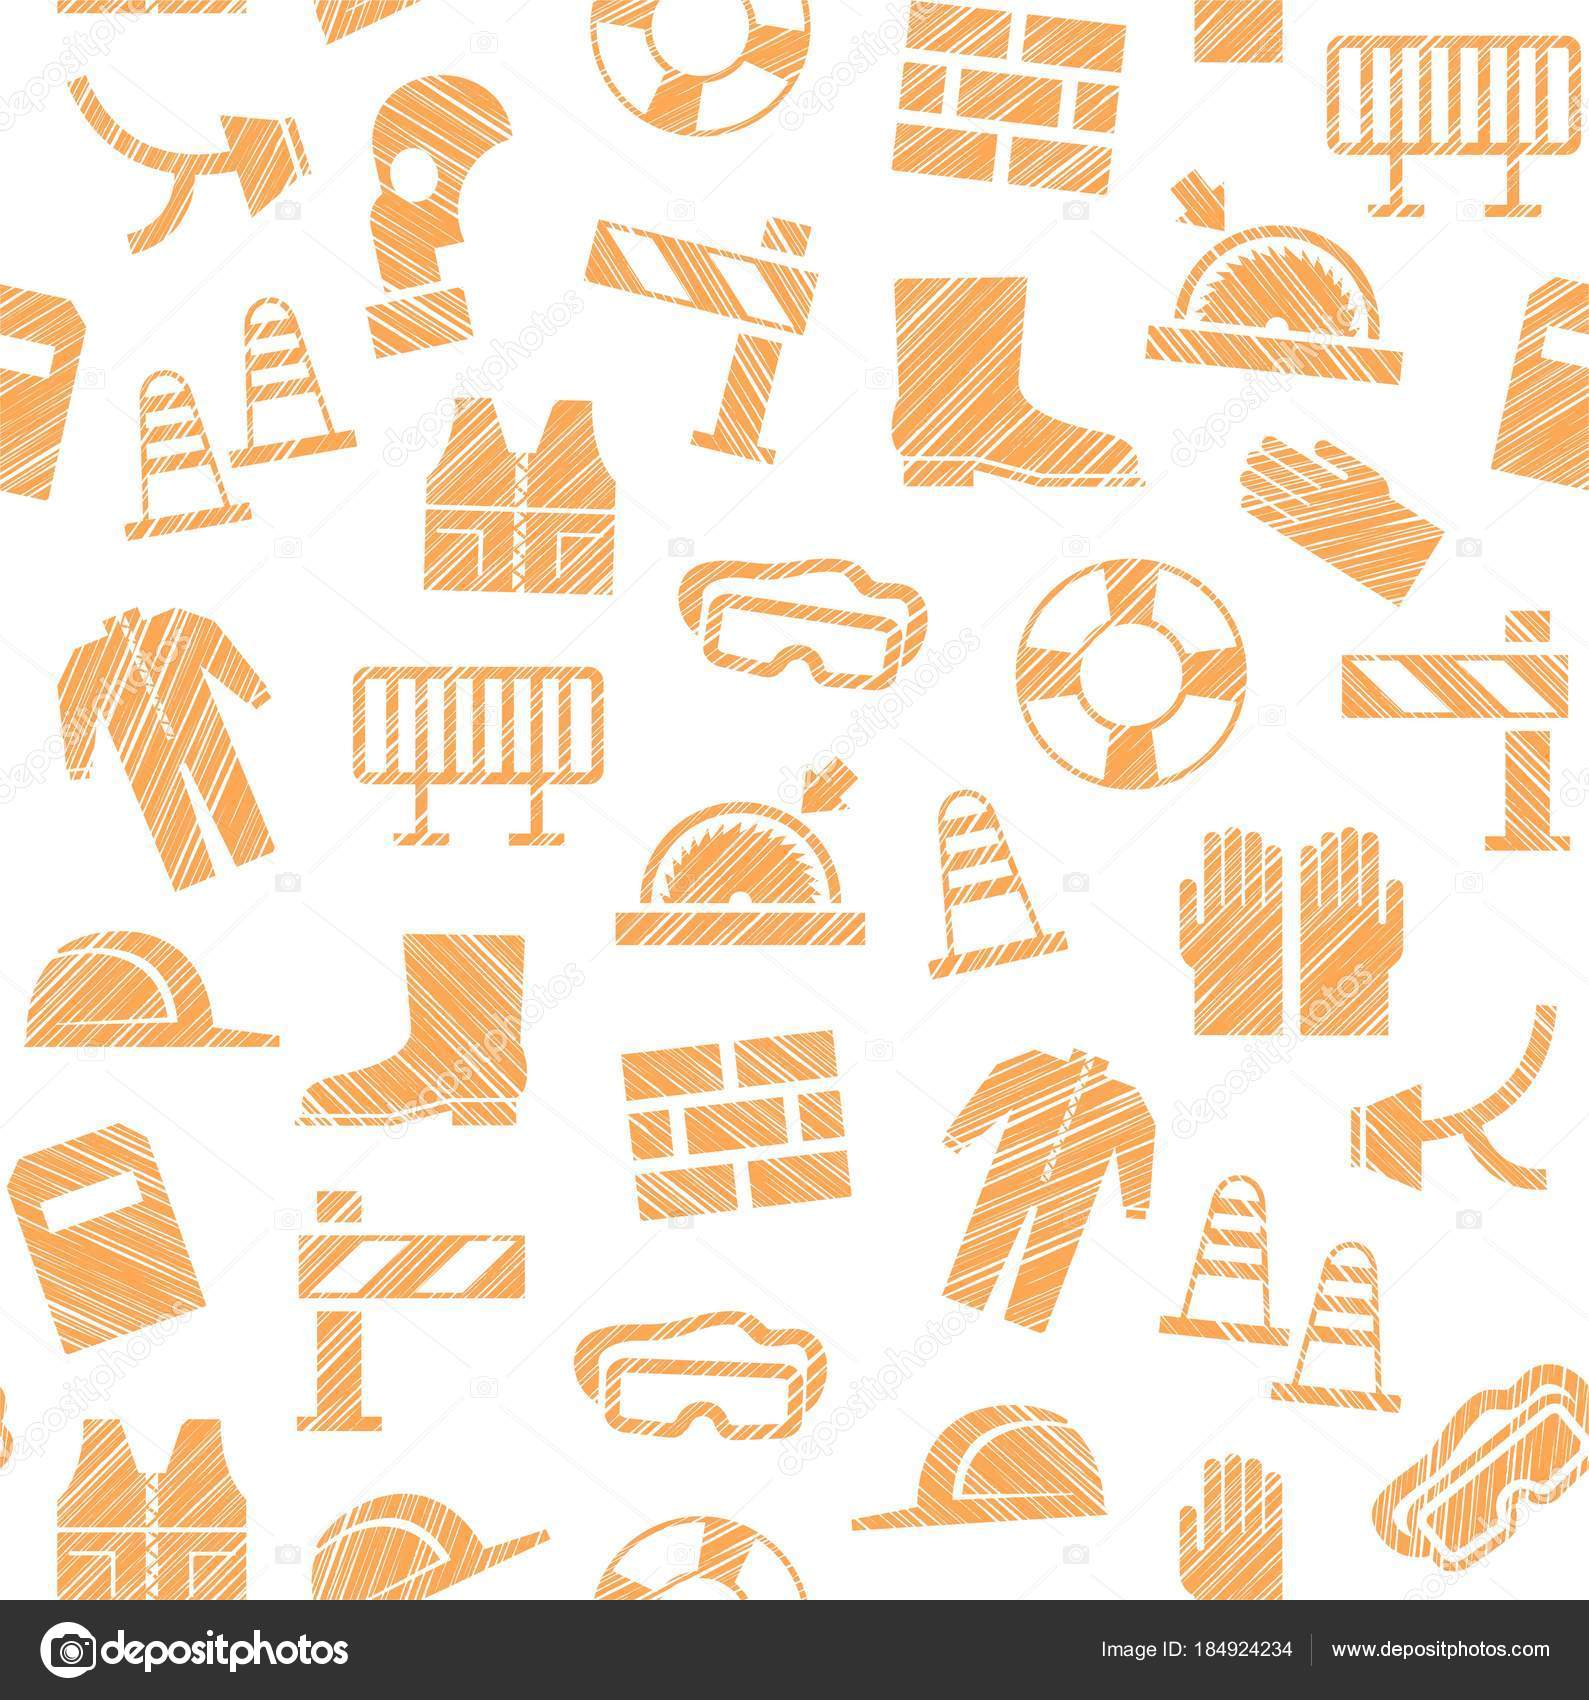 Labor Safety Safety Work Labor Protection Seamless Pattern White Orange Pencil